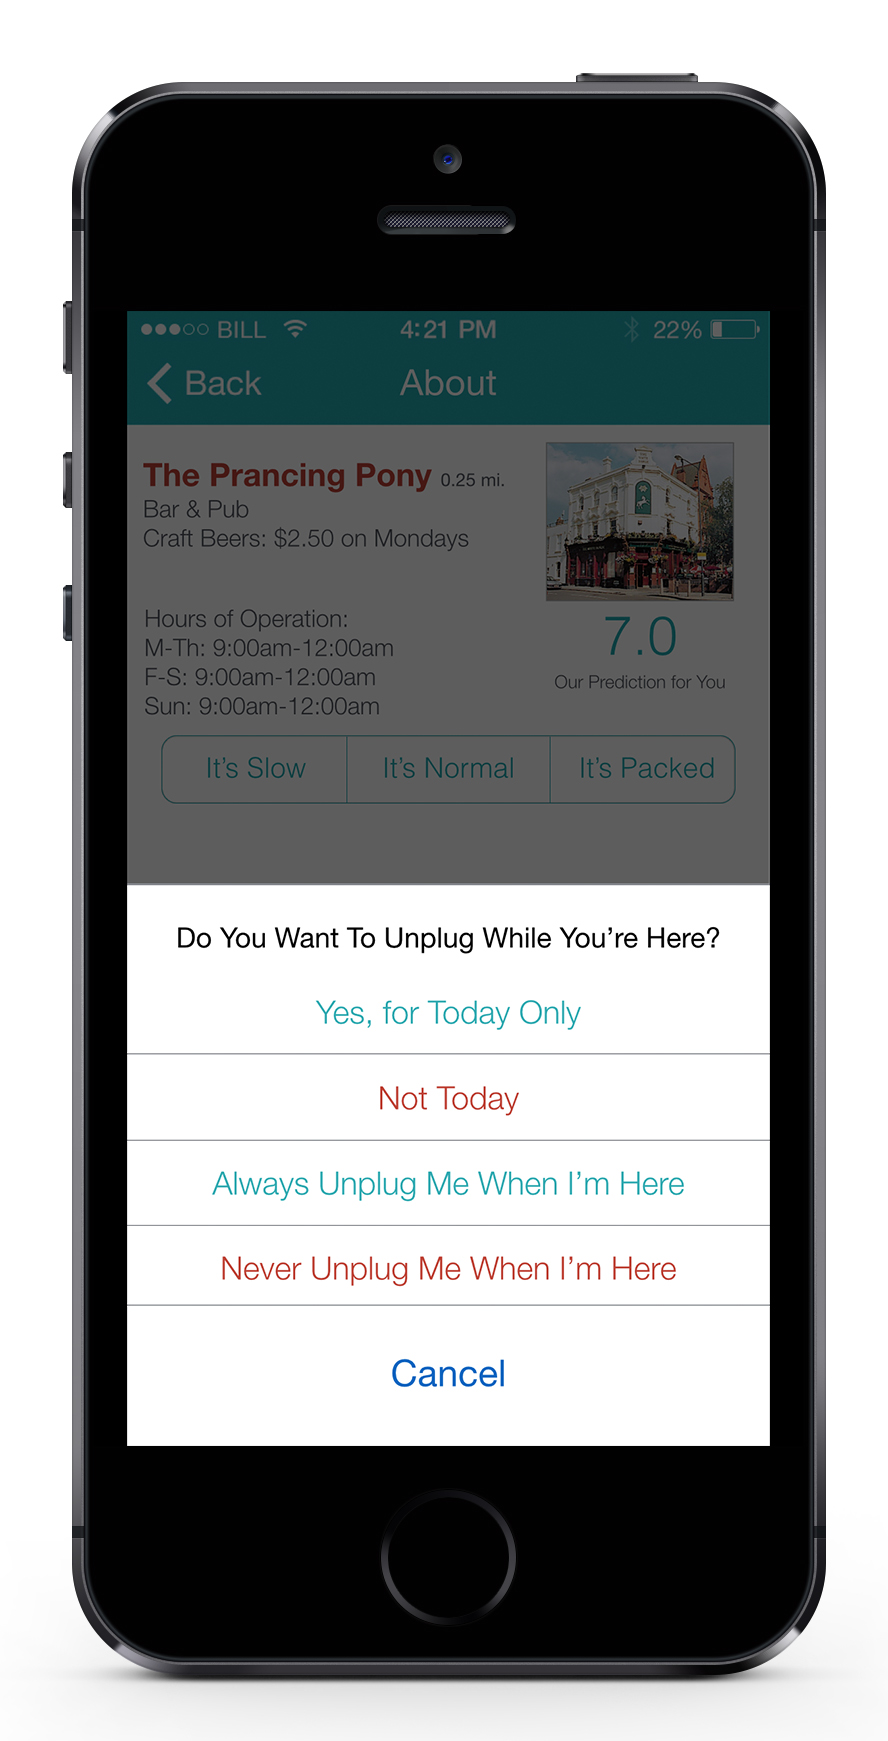 The app gives the user the option to control their unplug settings. If a user chooses to unplug while checked into a venue or event, the application will remind the user to put their phone away after five minutes of active smartphone use, while suggesting a recommendation via push notifications.